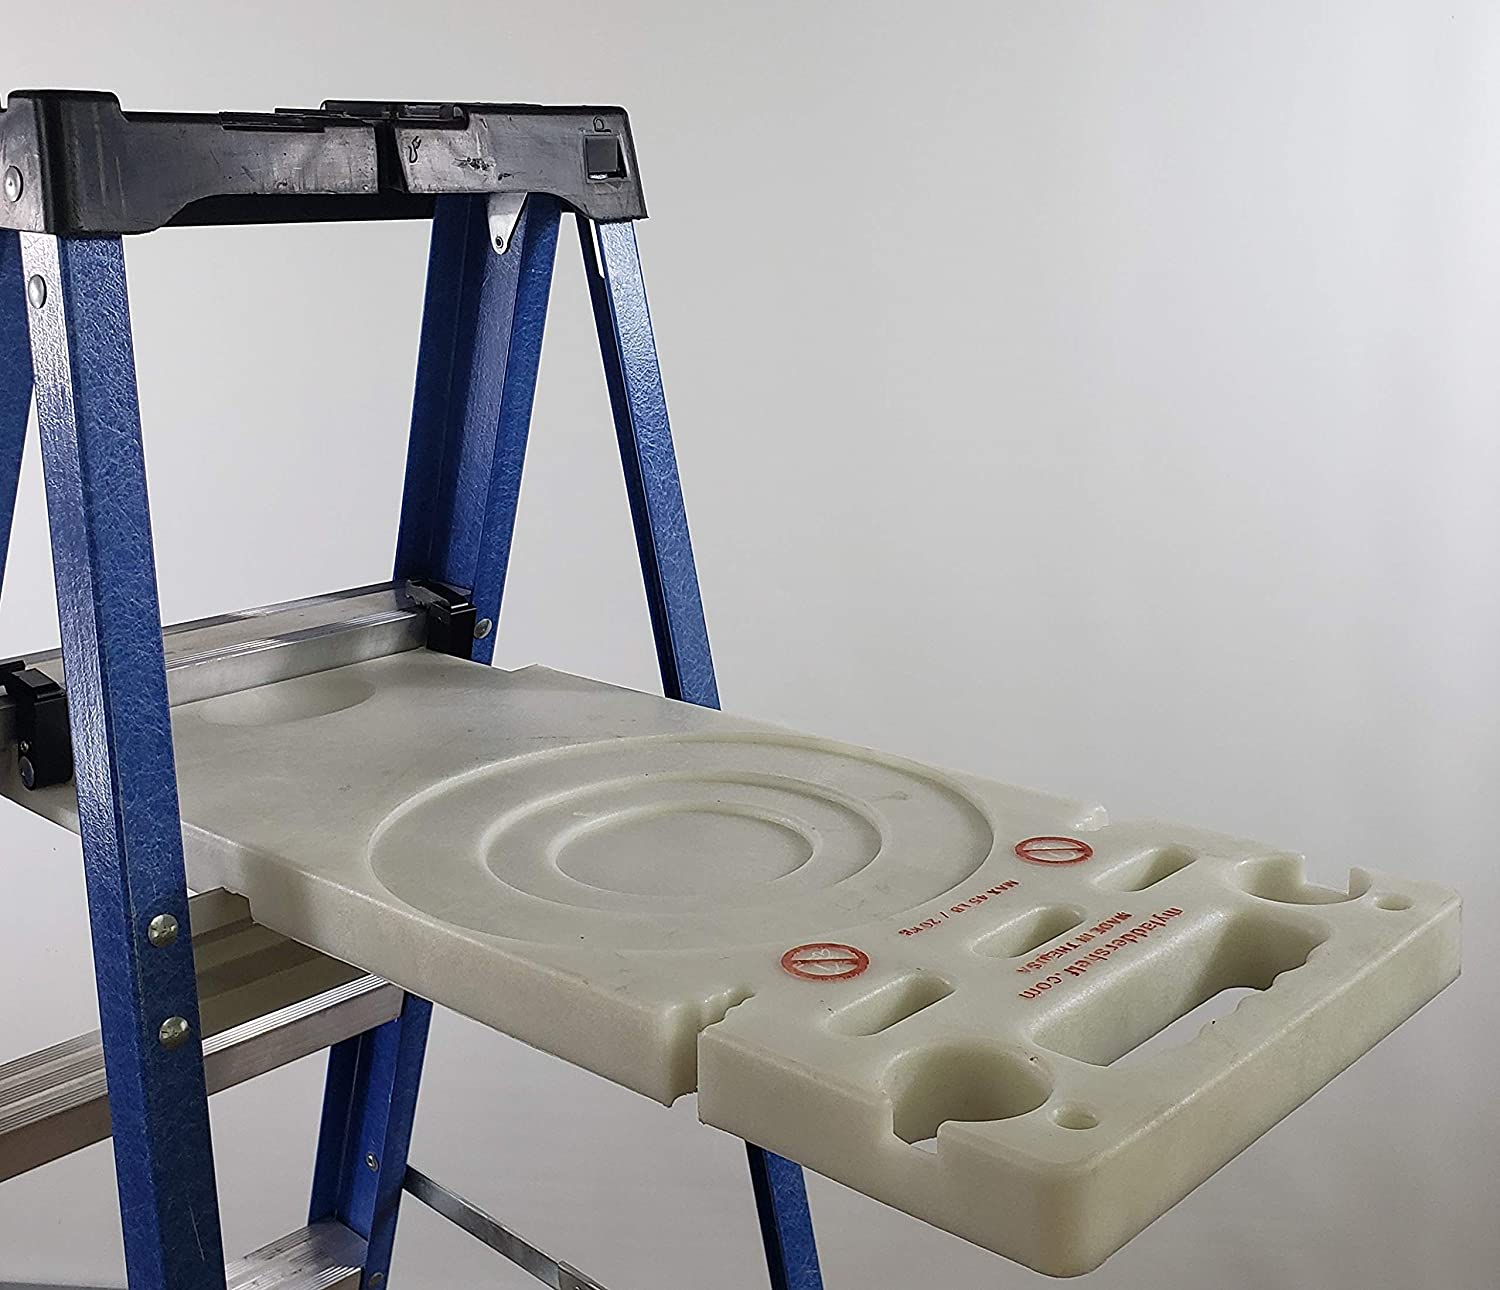 Ladder Shelf Systems -Heavy Duty -Multifunctional -Time saving - Professional Grade molded plastic pail shelf - attaches to most Warner, Louisville, and Keller brand single sided A-frame step ladders